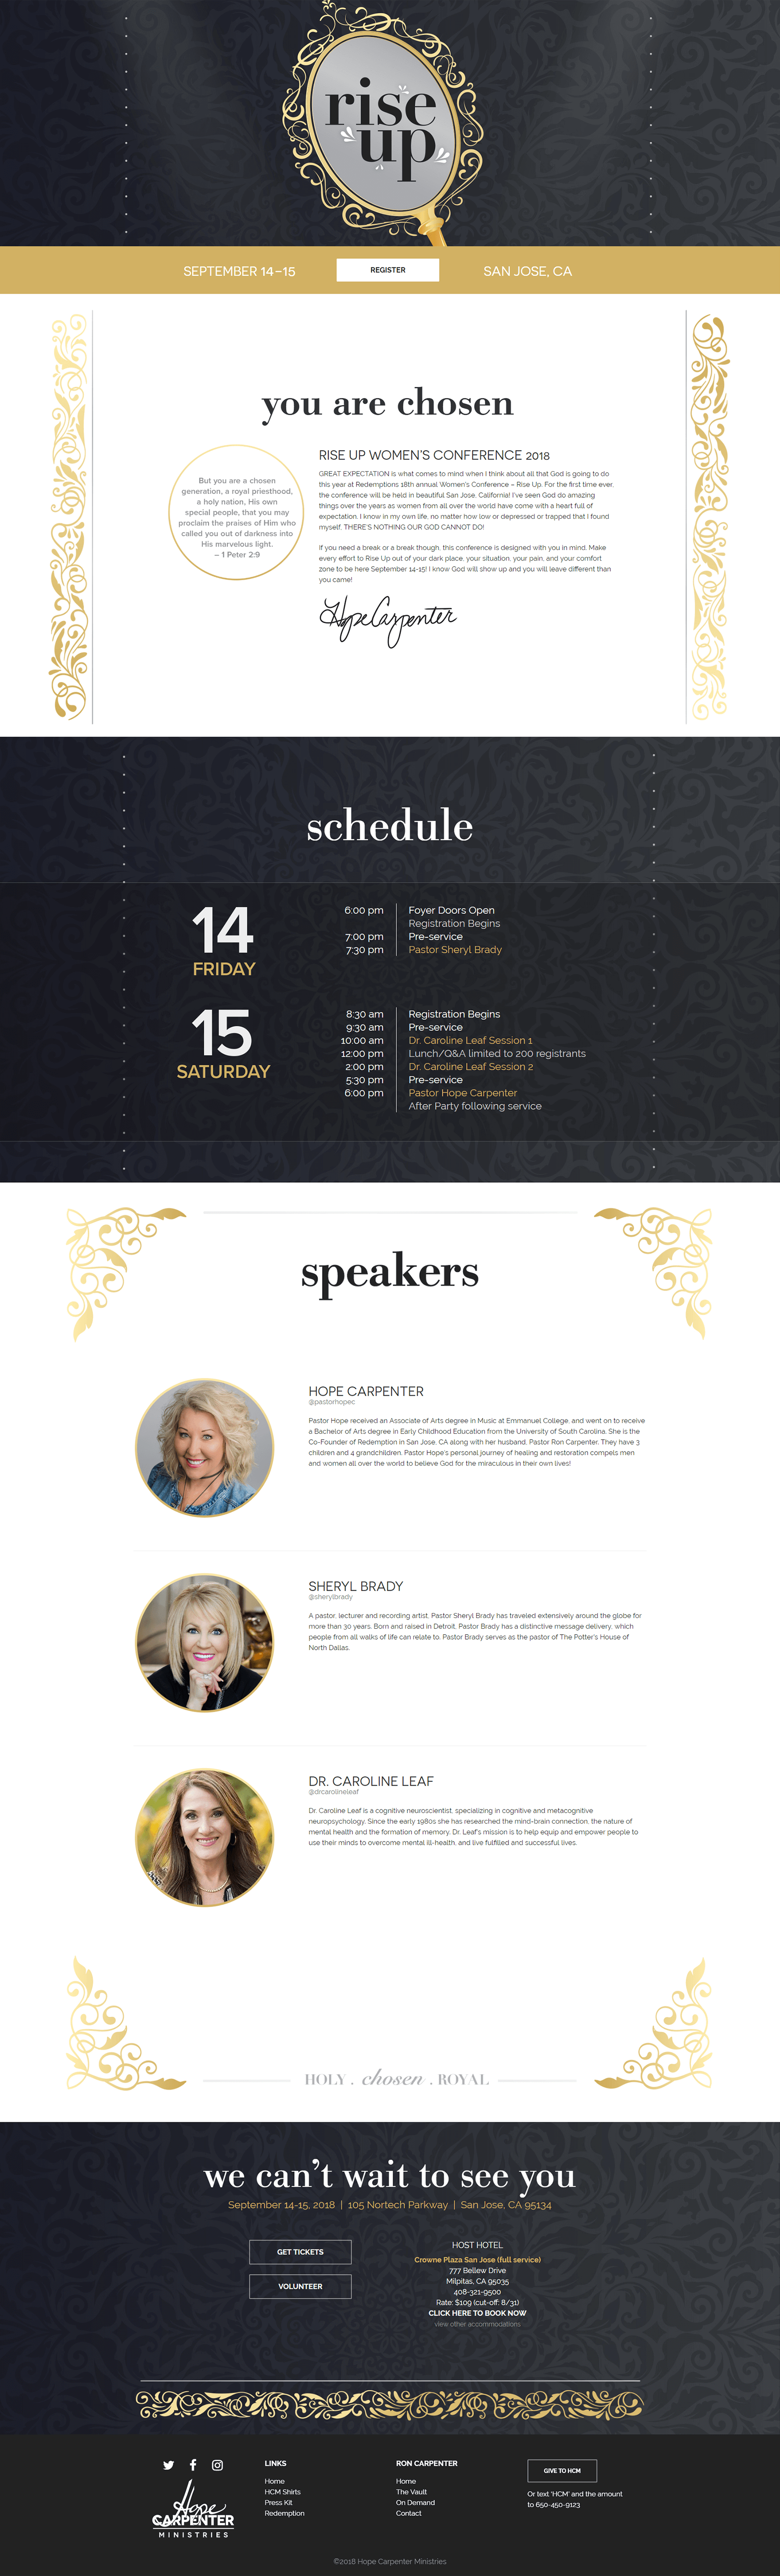 Rise Up Conference homepage